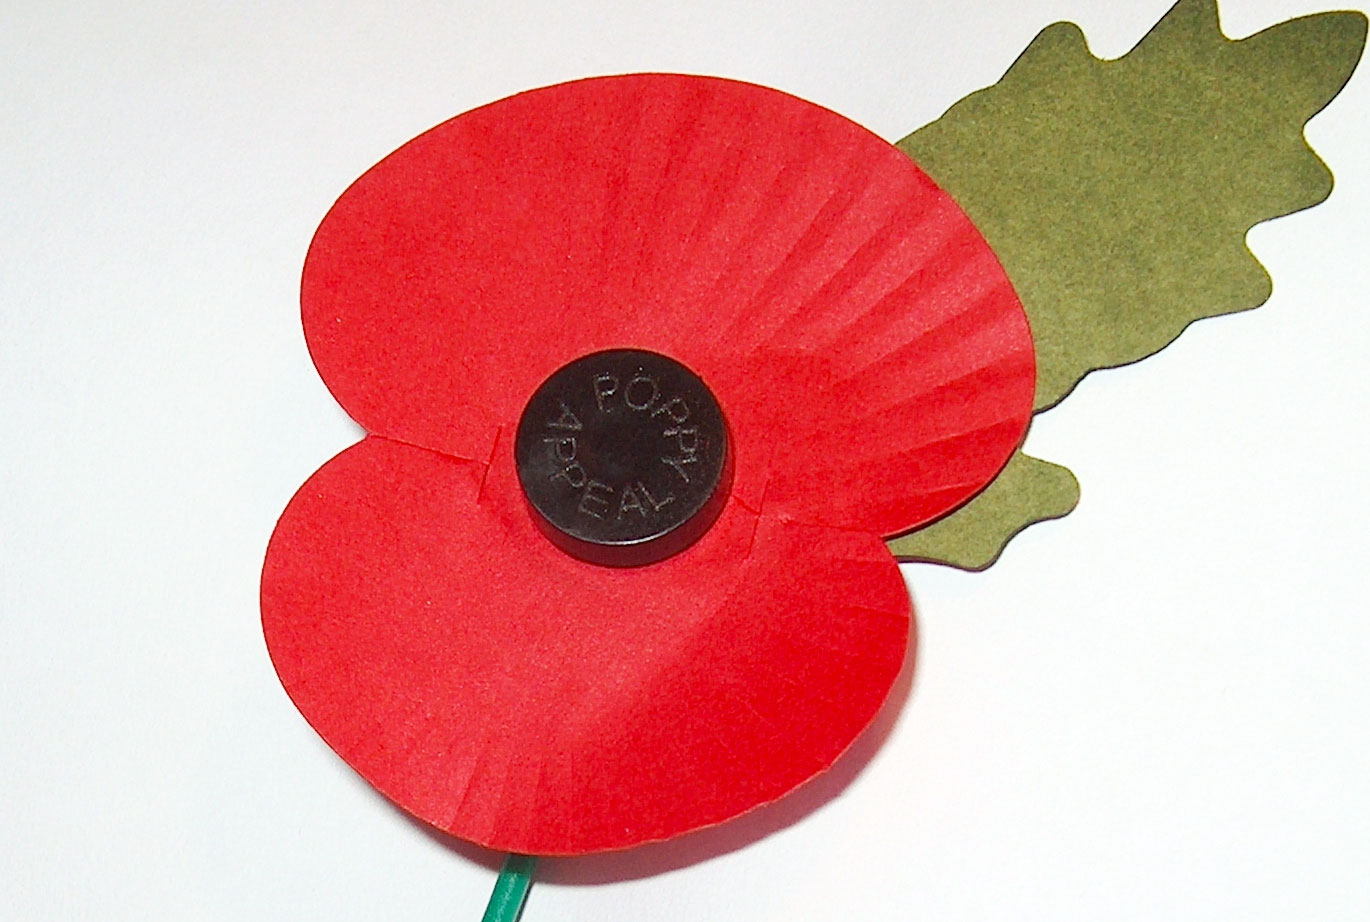 Cowboys, Jaguars to Wear Poppies on Uniforms